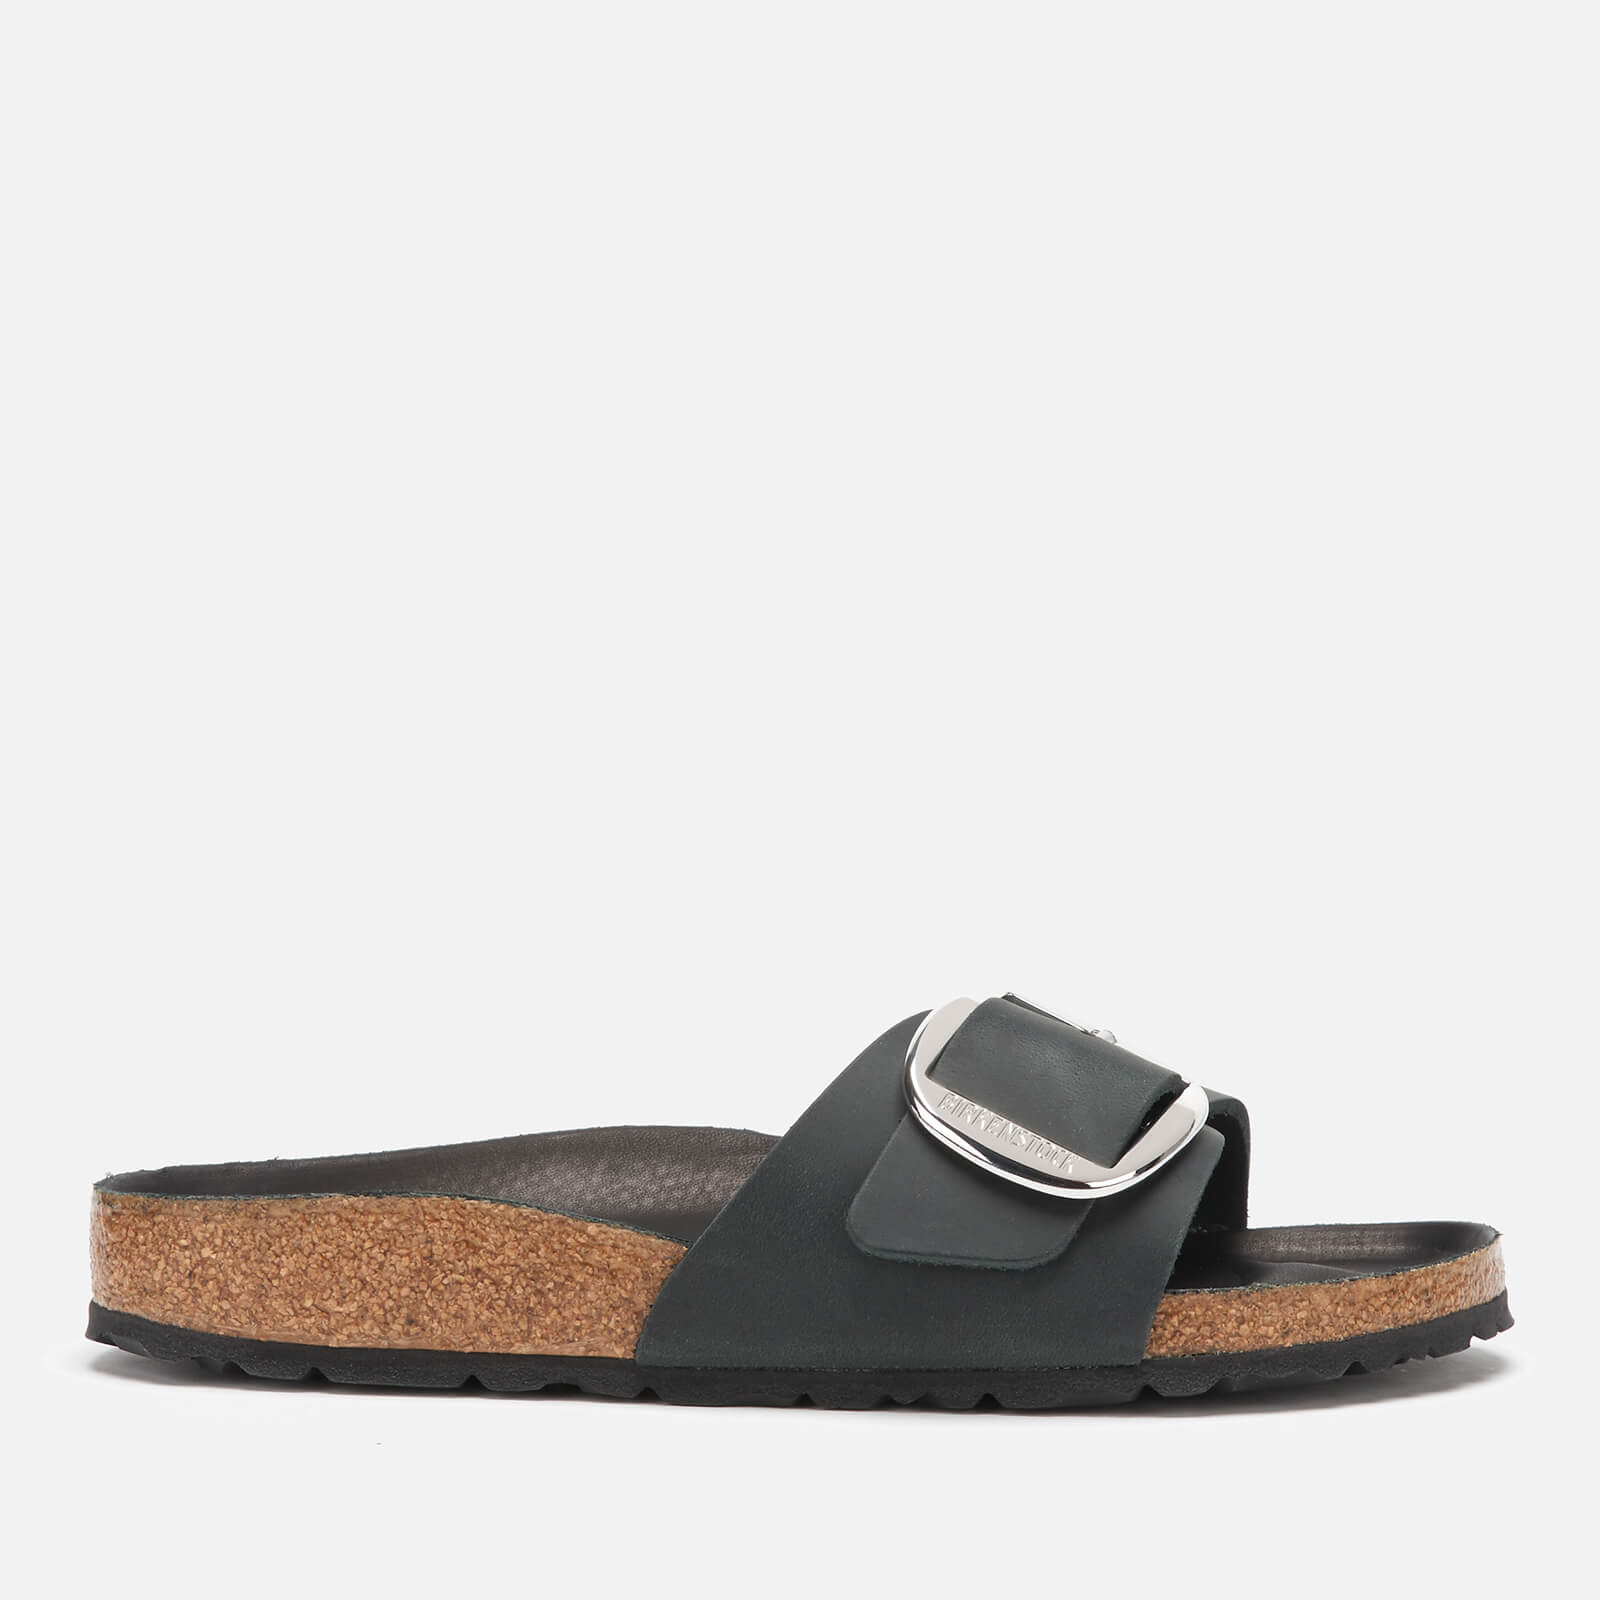 f22dbd0b0f2 Birkenstock Women's Madrid Big Buckle Leather Slim Fit Double Strap Sandals  - Black | FREE UK Delivery | Allsole